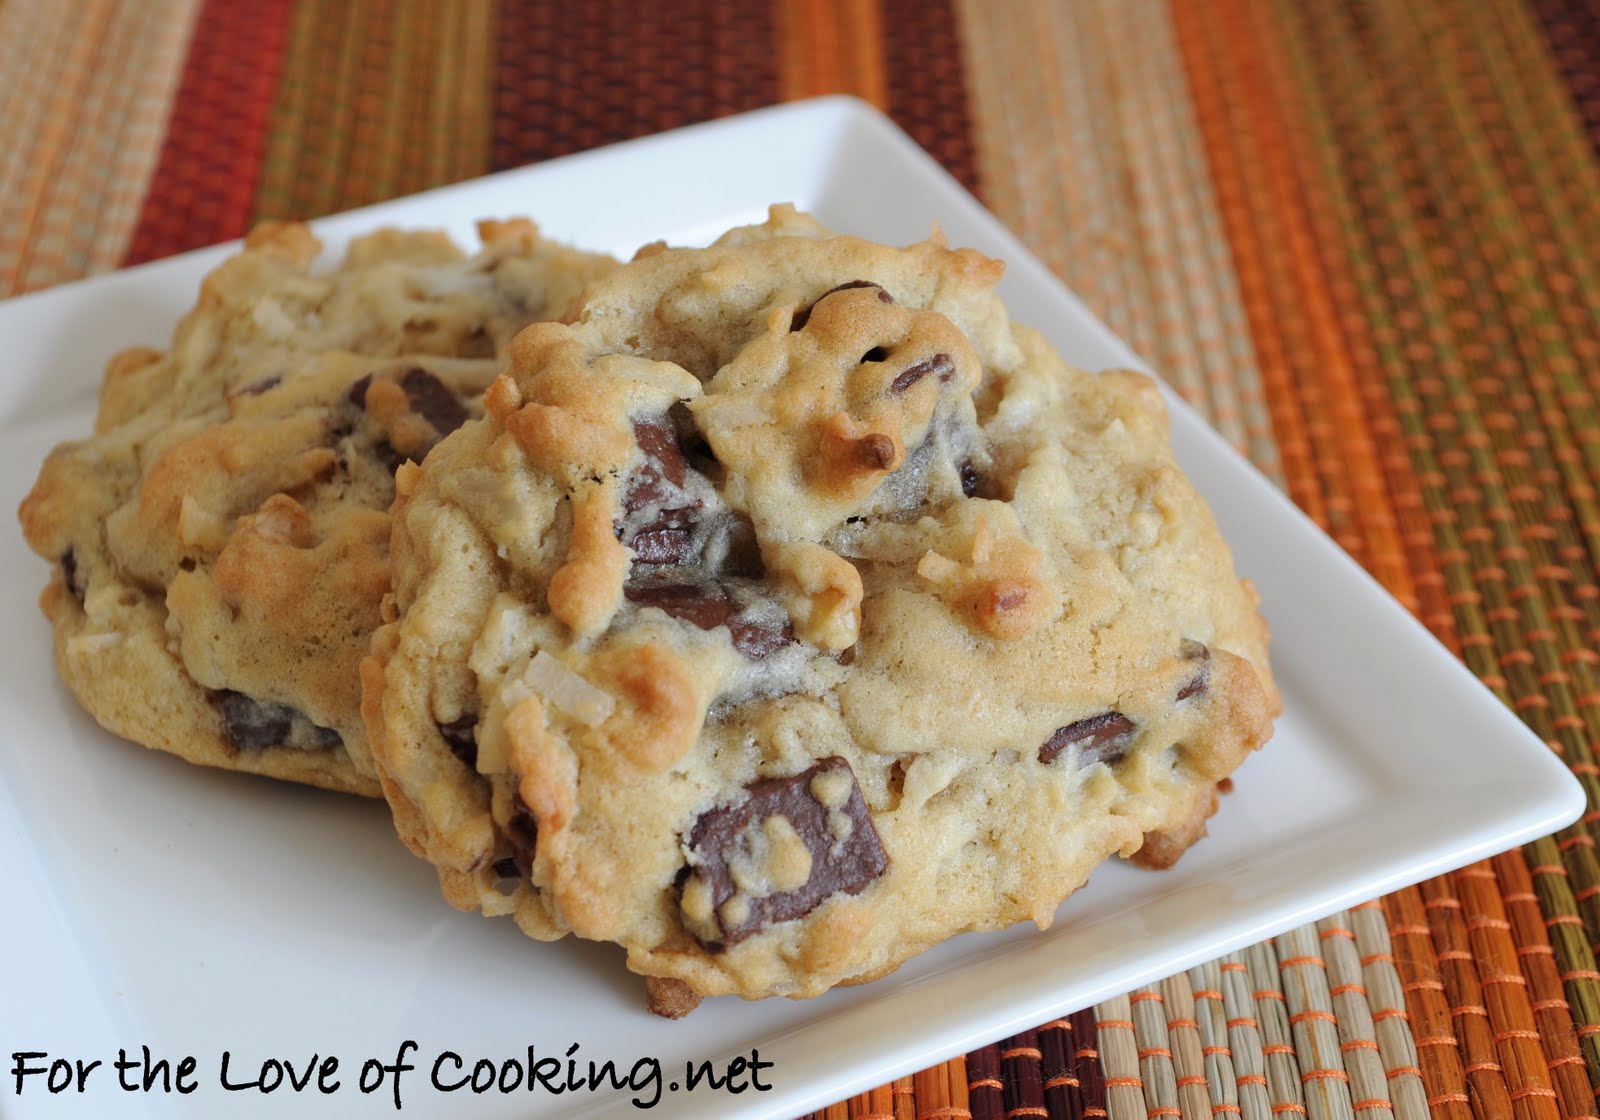 Coconut, Chocolate Chunk, and Walnut Cookies | For the Love of Cooking